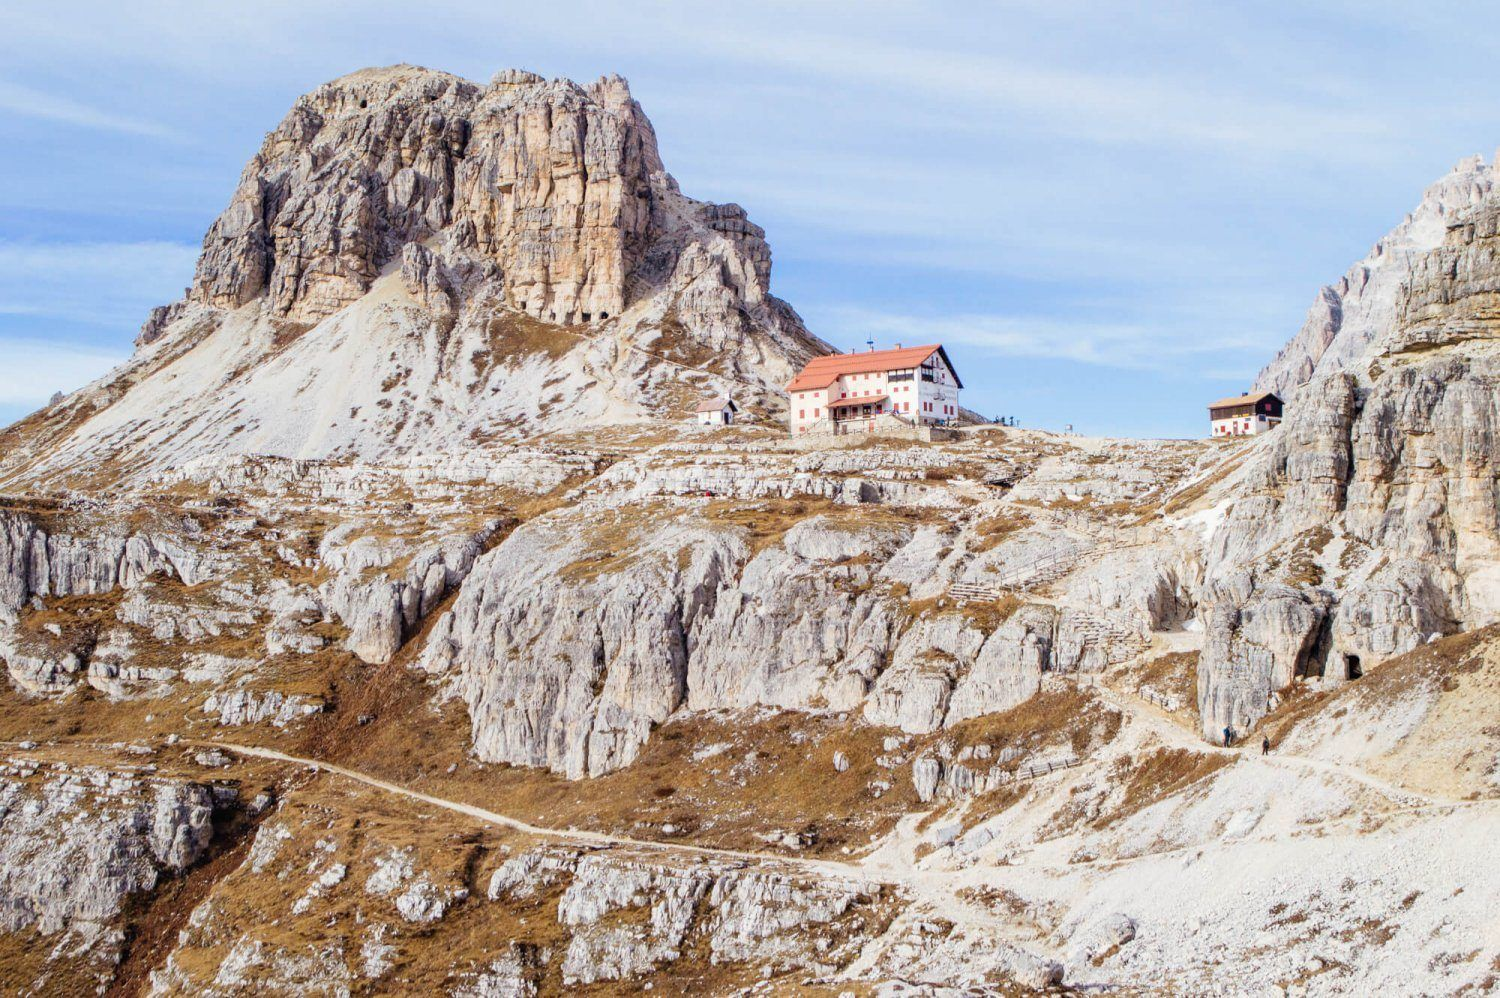 An Adventure in the Dolomites